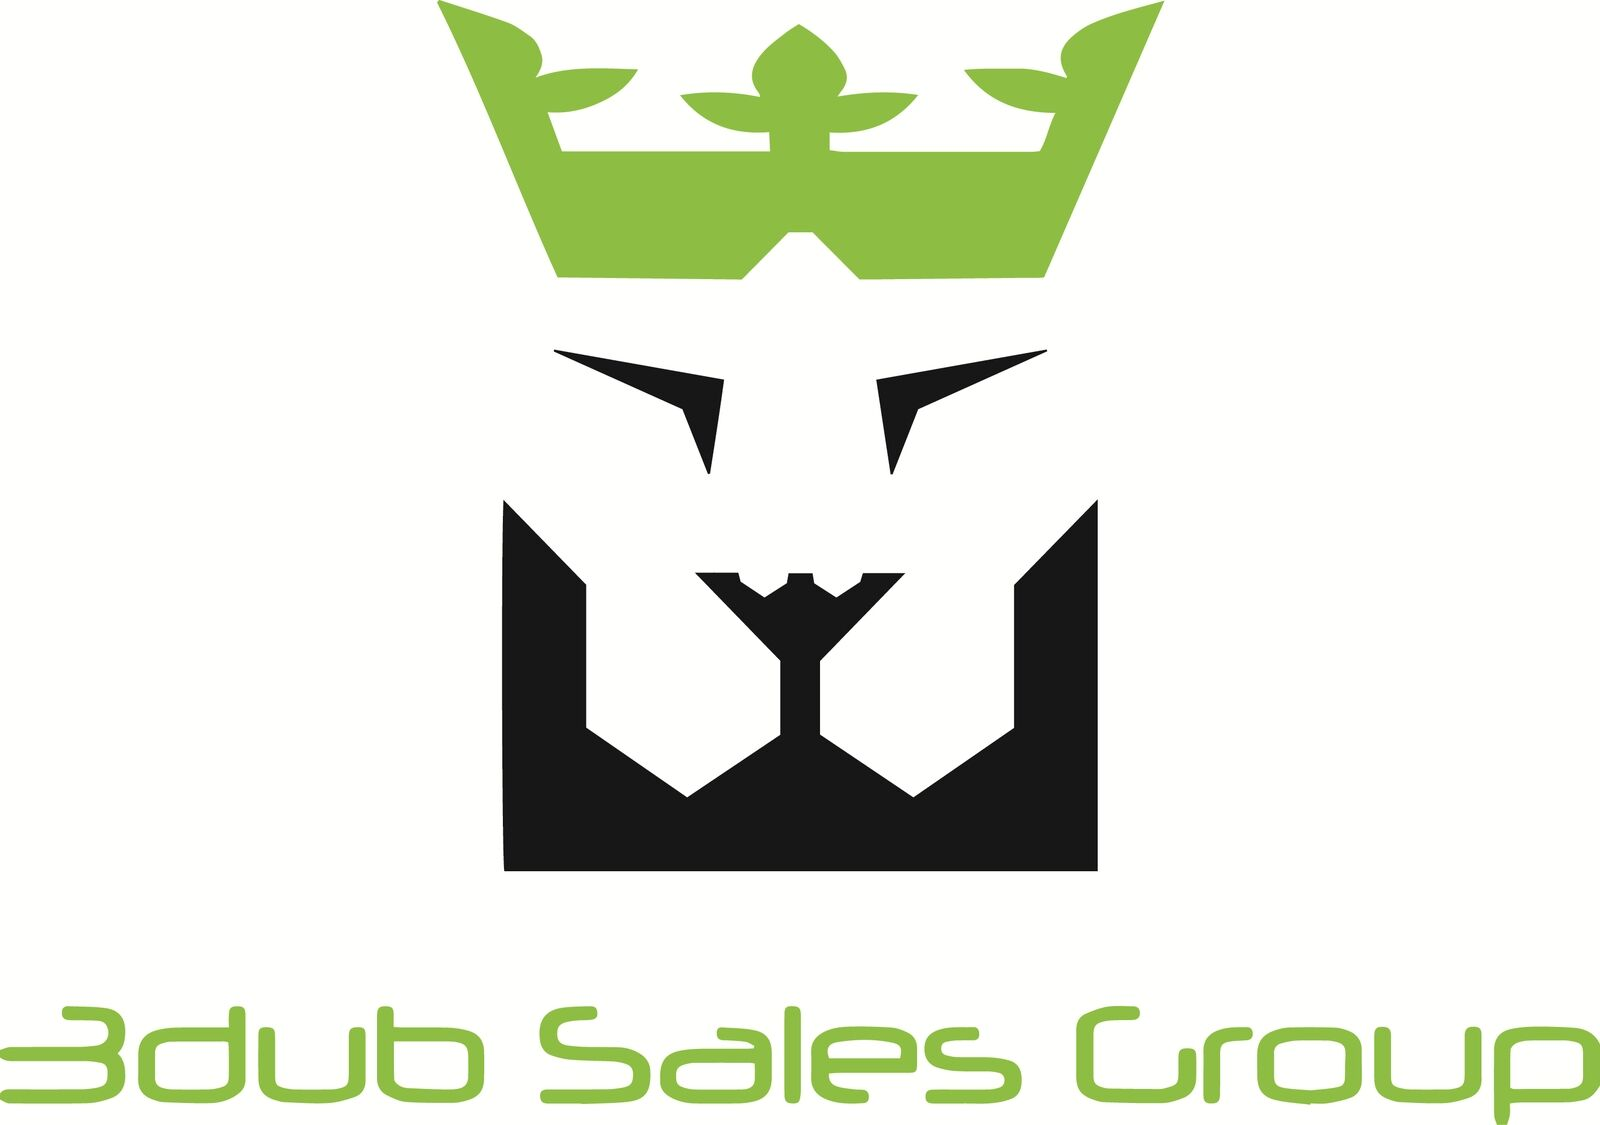 3 dub sales group